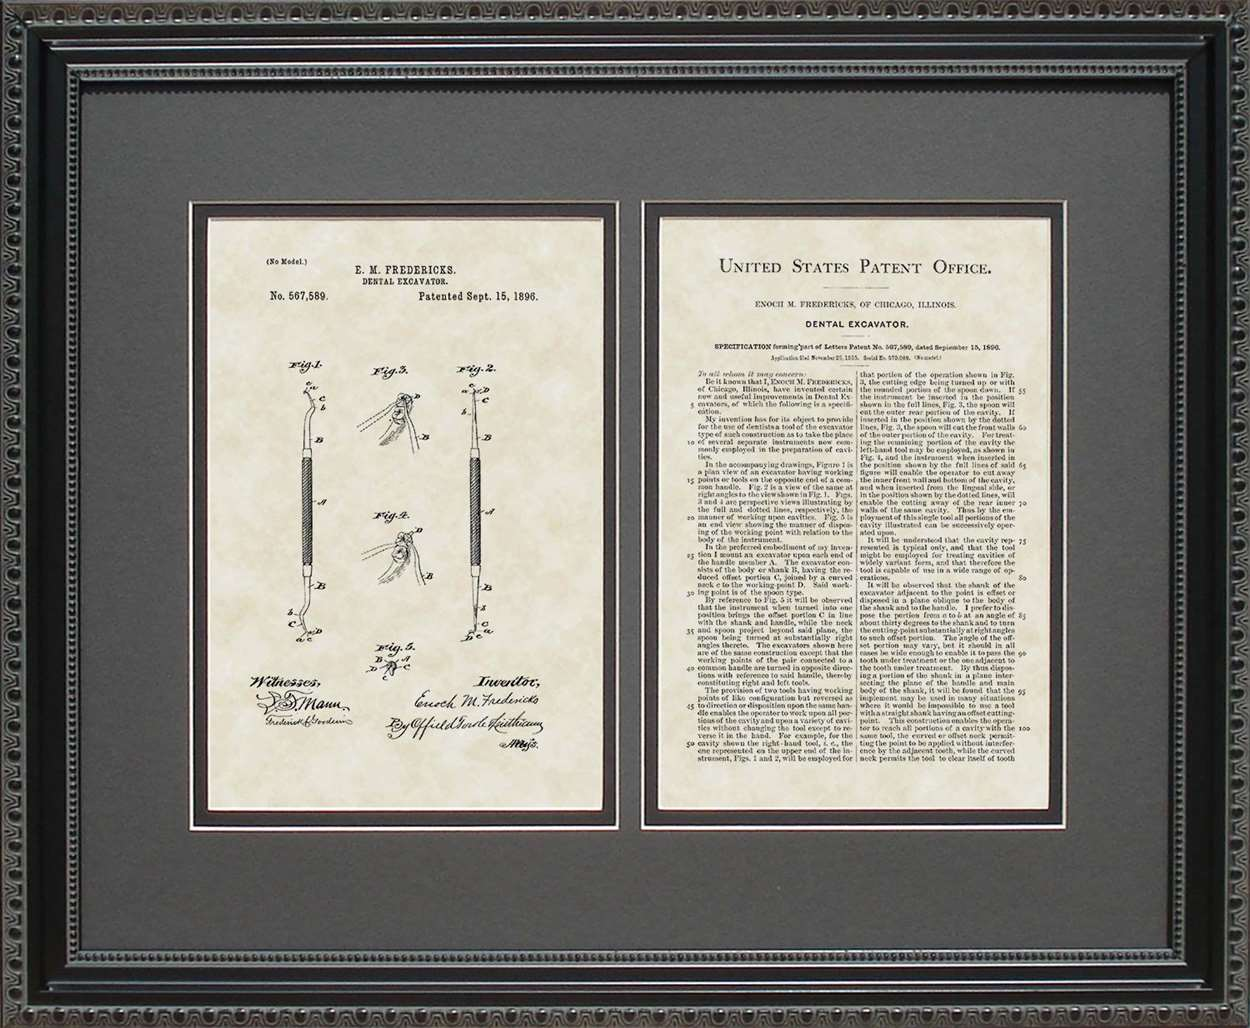 Dental Currette Patent, Art & Copy, Fredericks, 1896, 16x20